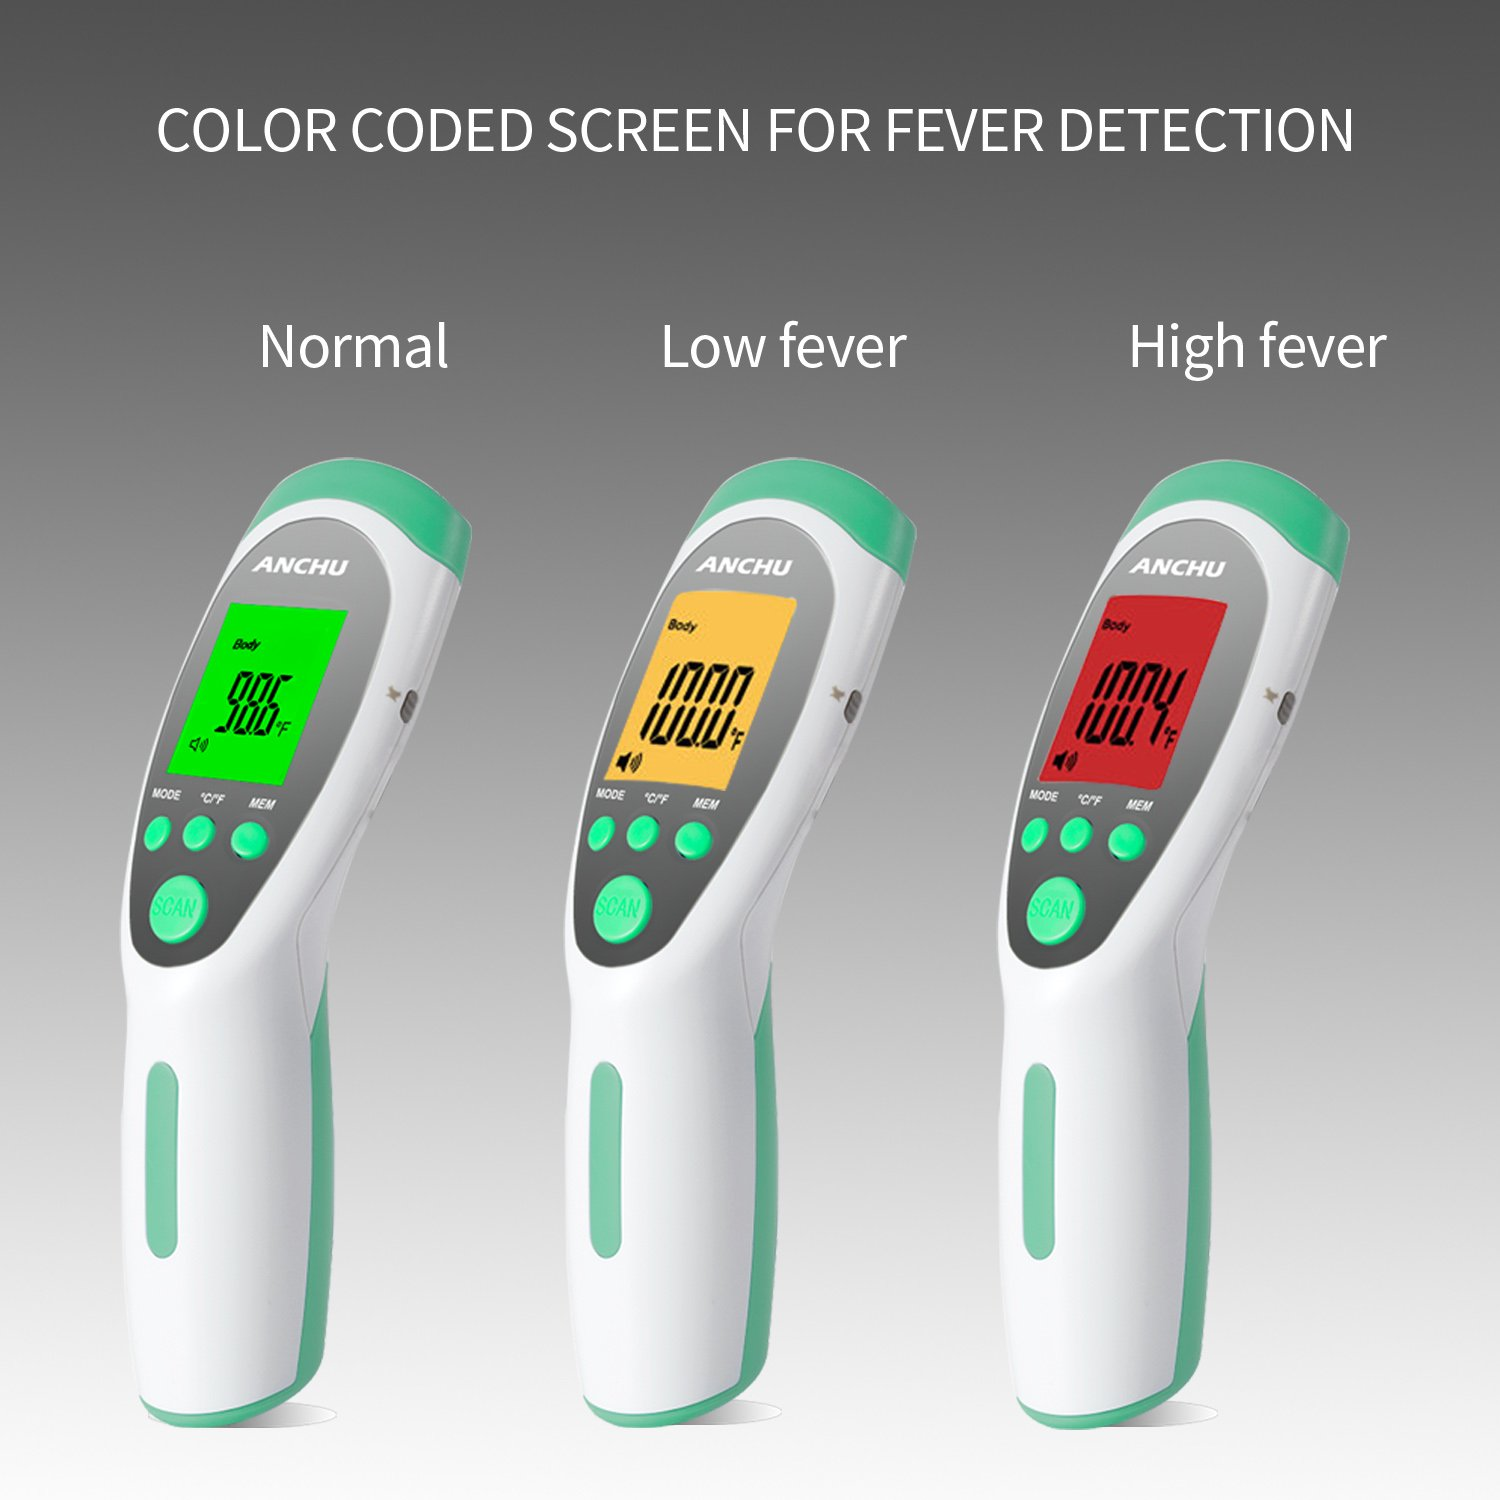 Medical Infrared Non-Contact Forehead FeverThermometer for Baby Kids Infants and Adults with Fever Indicator FDA and CE Approved by ANCHU (Image #6)